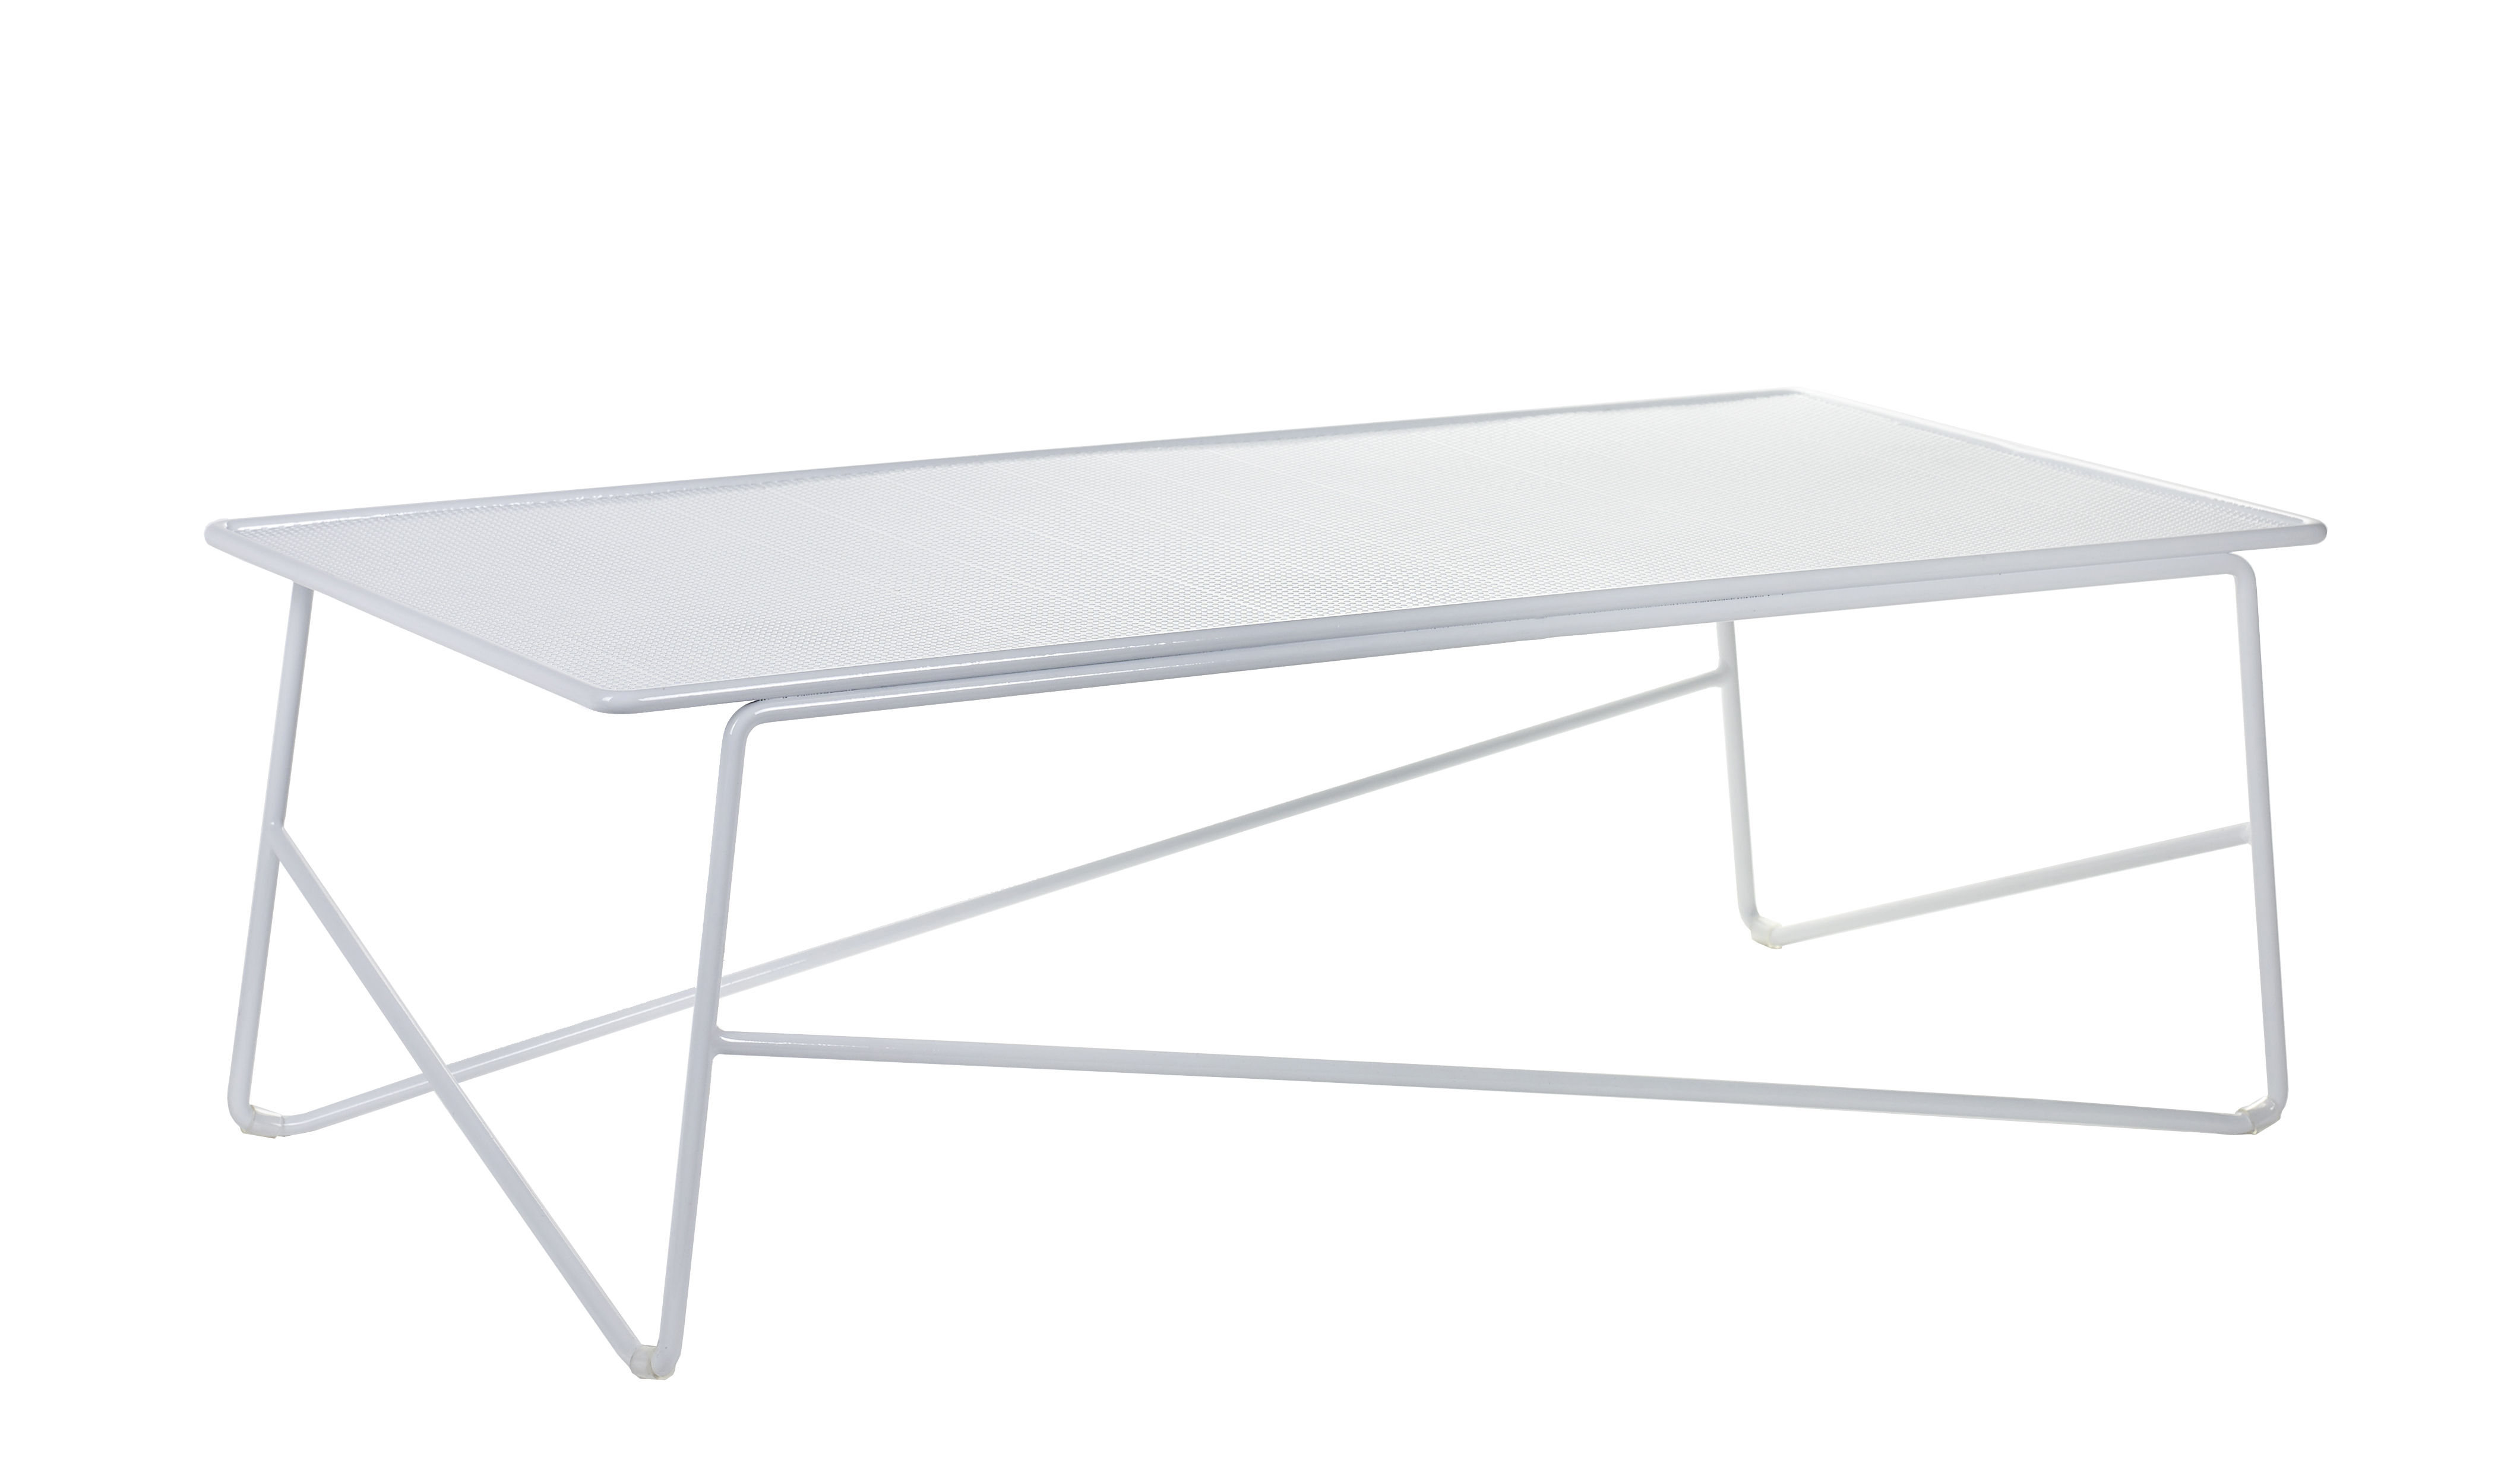 Furniture - Coffee Tables - Fish & Fish Coffee table - / Large - 90 x 45 cm by Serax - Blanc - Lacquered aluminium